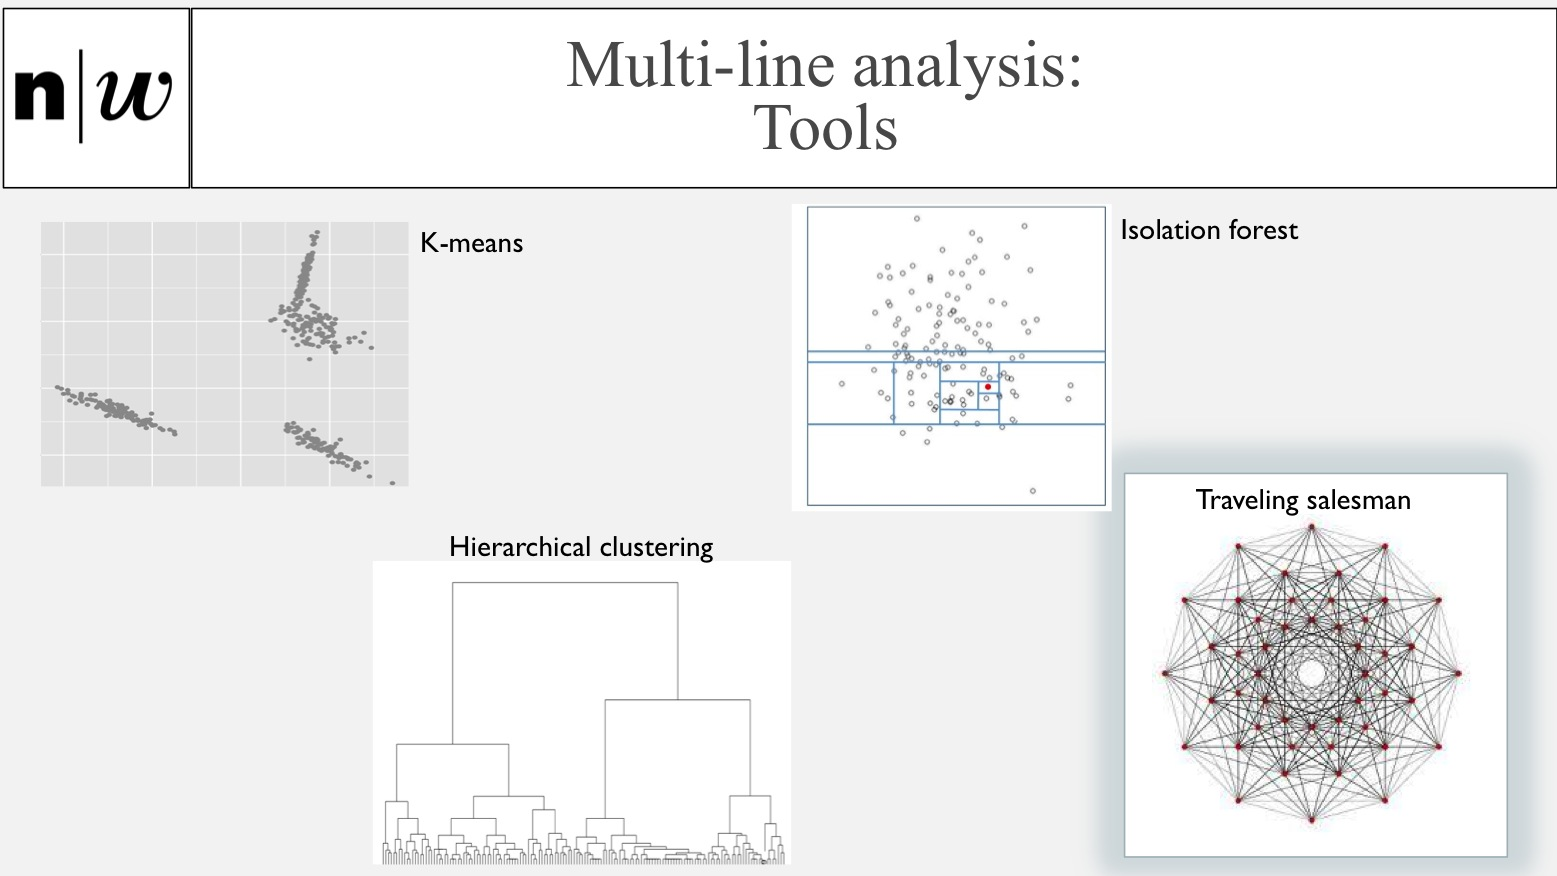 Multi-line analysis: Tools: K-means, Isolation forest, Hierarchical clustering, Traveling salesman